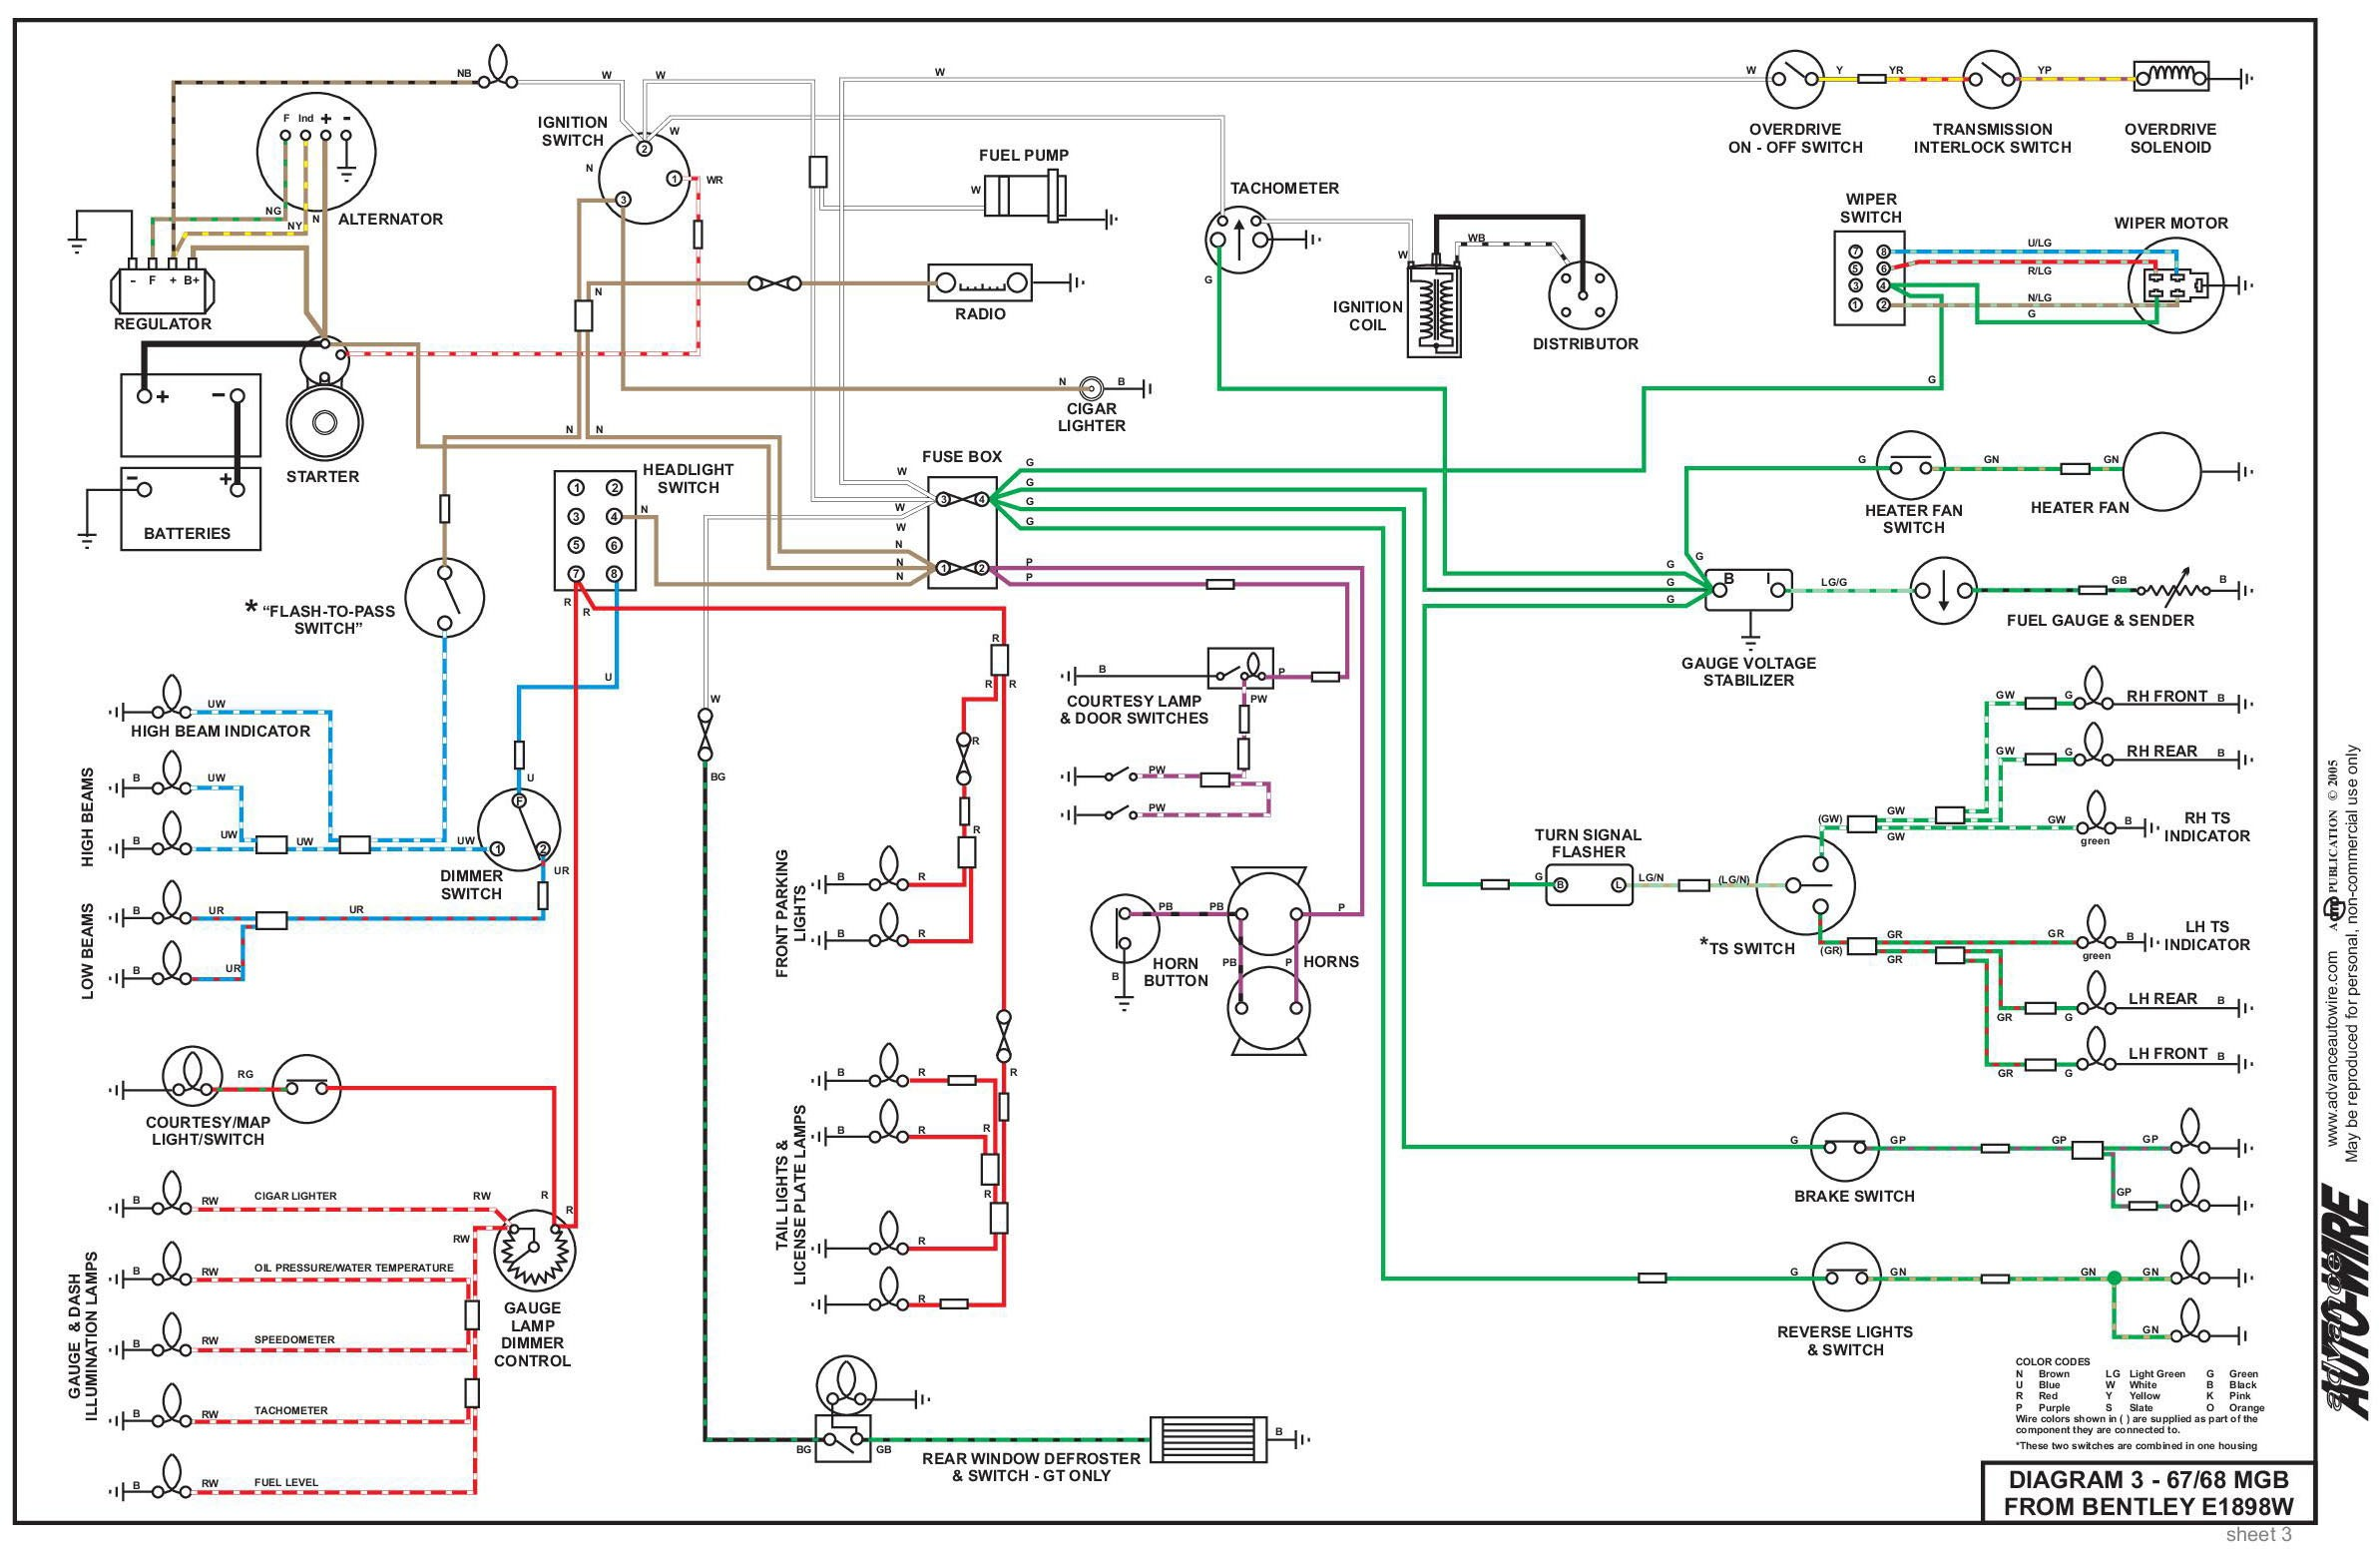 3 Post Flasher Diagram Electrical System Of 3 Post Flasher Diagram